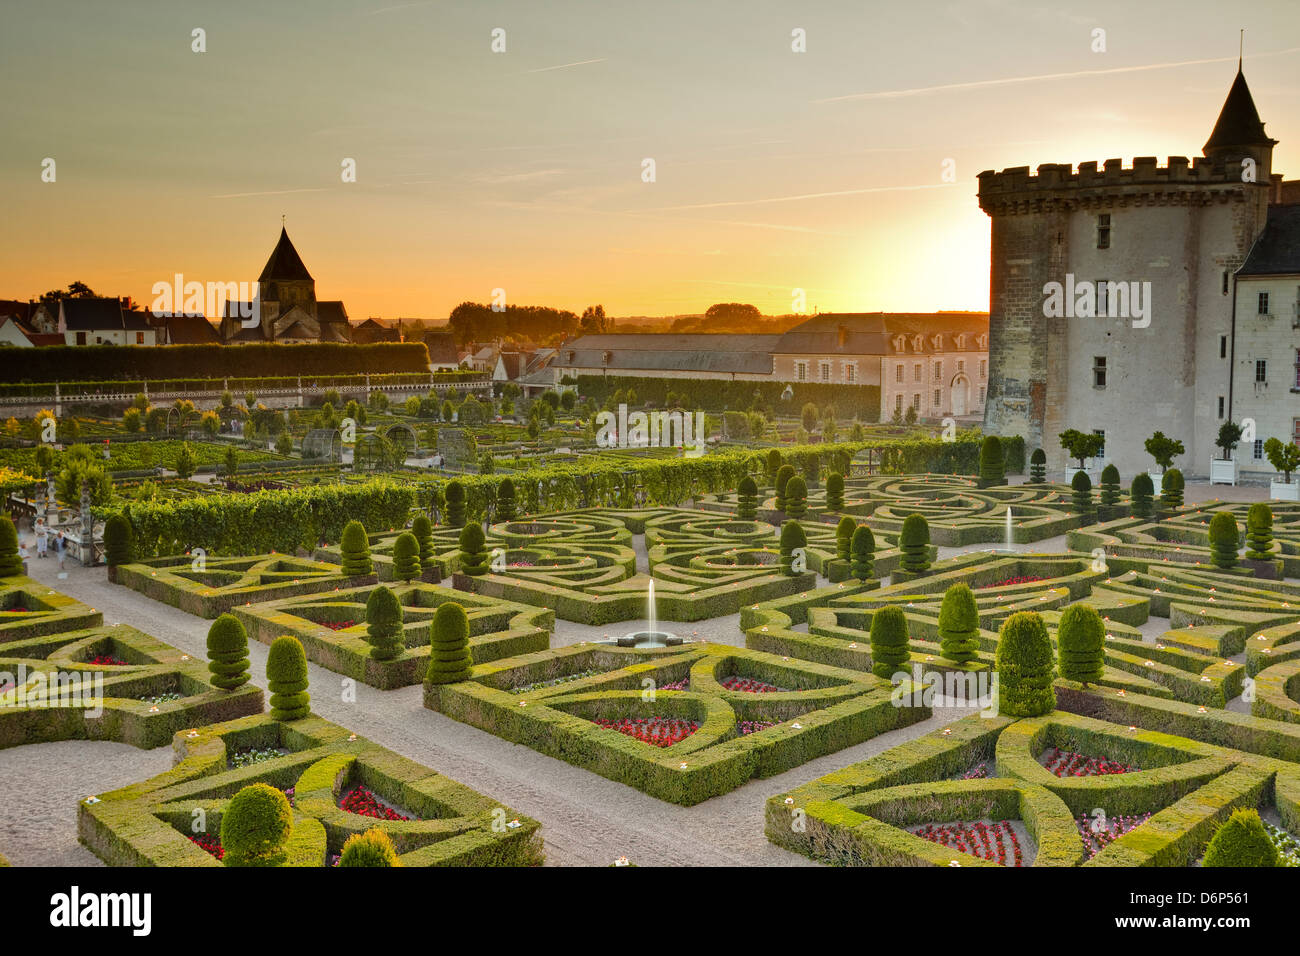 The Chateau de Villandry and its gardens at sunset, UNESCO World Heritage Site, Indre-et-Loire, Loire Valley, France, Europe Stock Photo